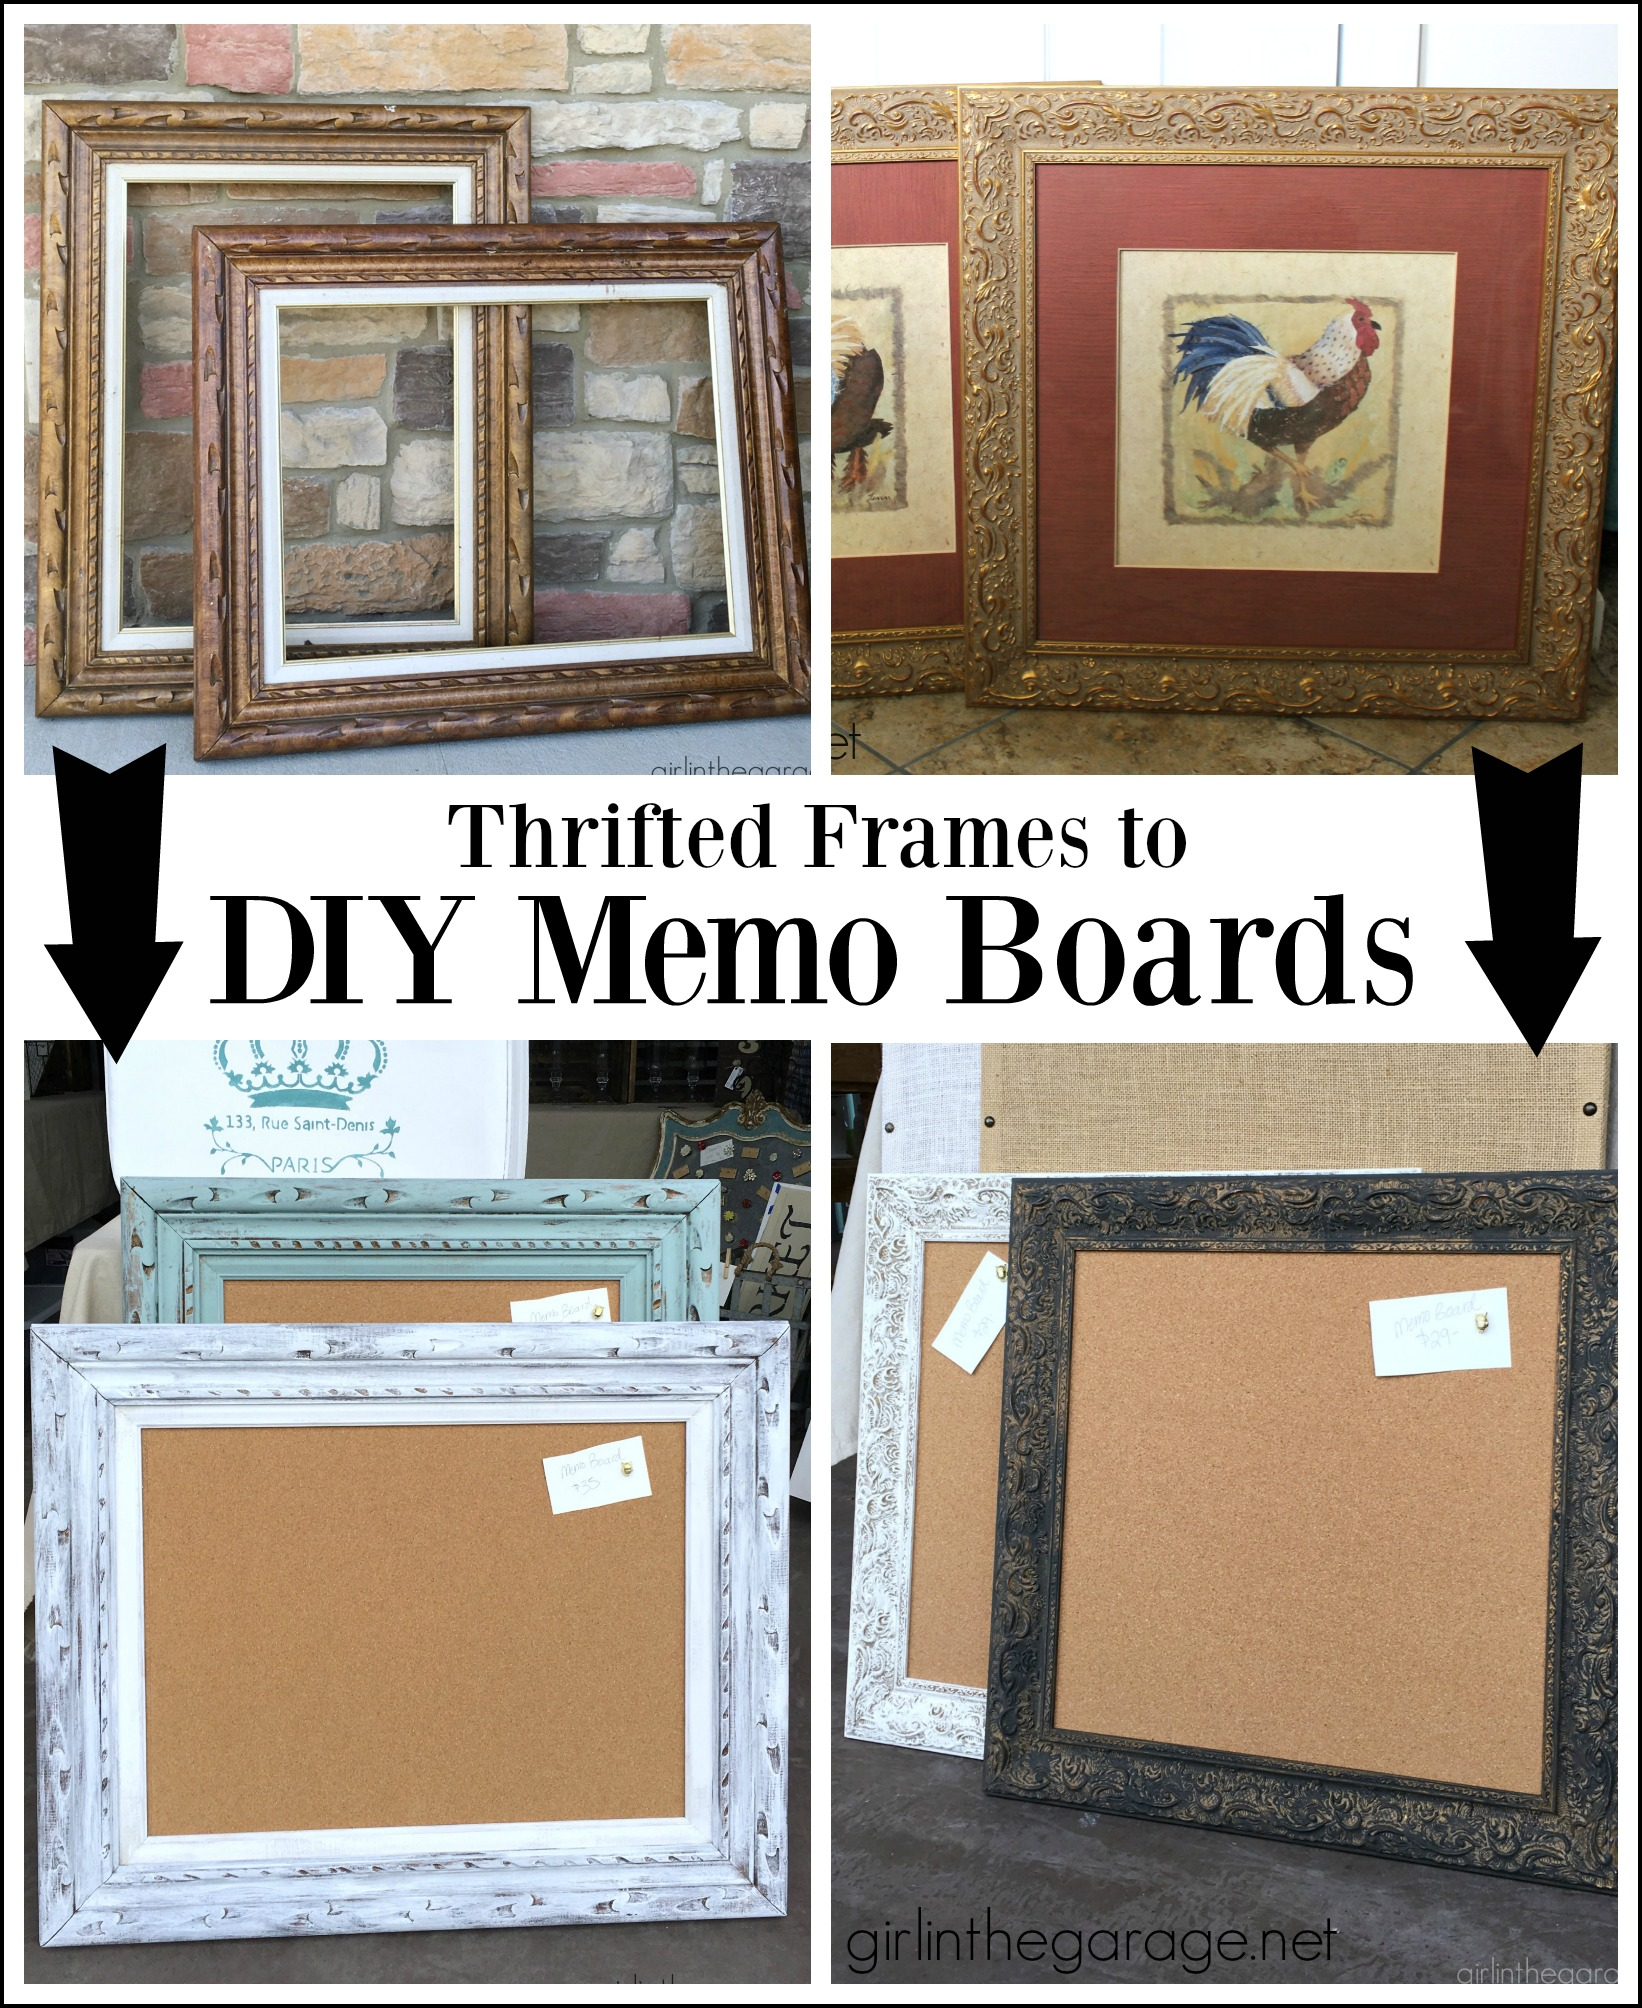 Thrifted art upcycled to DIY memo boards - Love this idea! By Girl in the Garage